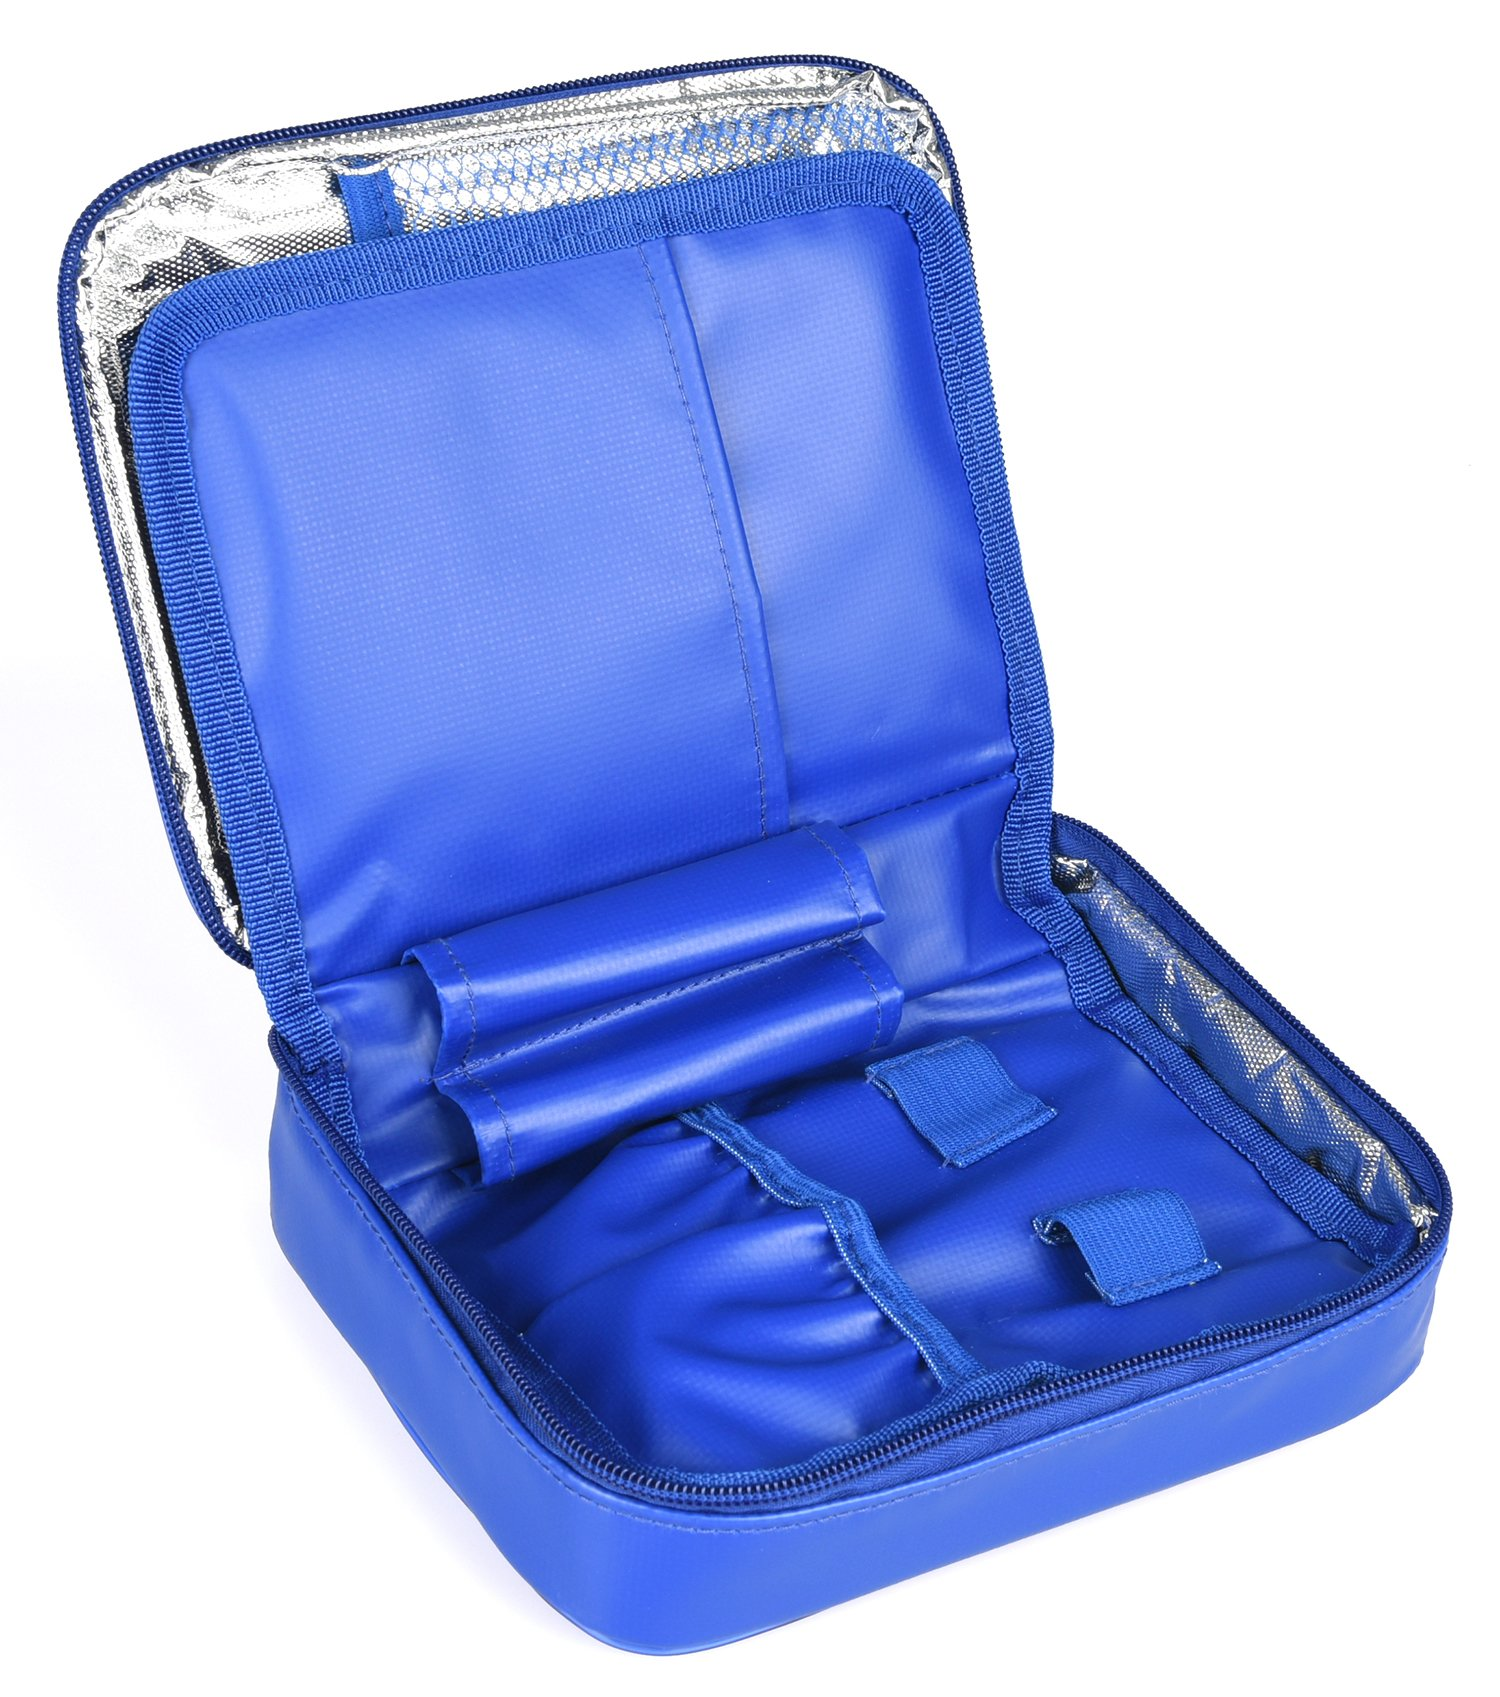 Goldwheat Insulin Cooler Travel Case Waterproof Large Diabetic Organizer Medical Cooling Bag,No Ice Pack(Blue)